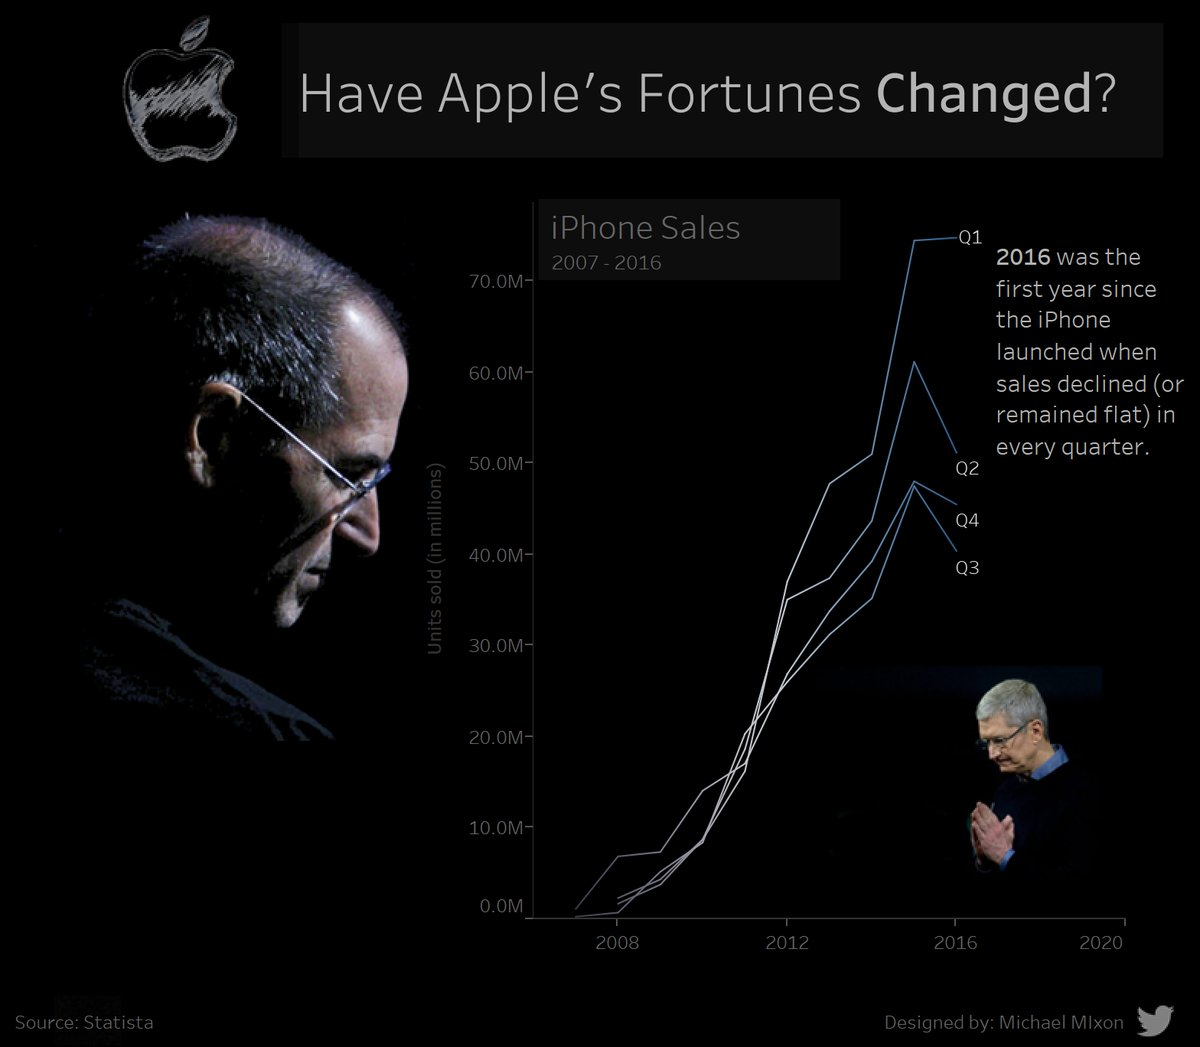 Week 2 – Have Apple Lost Their Edge With iPhone?